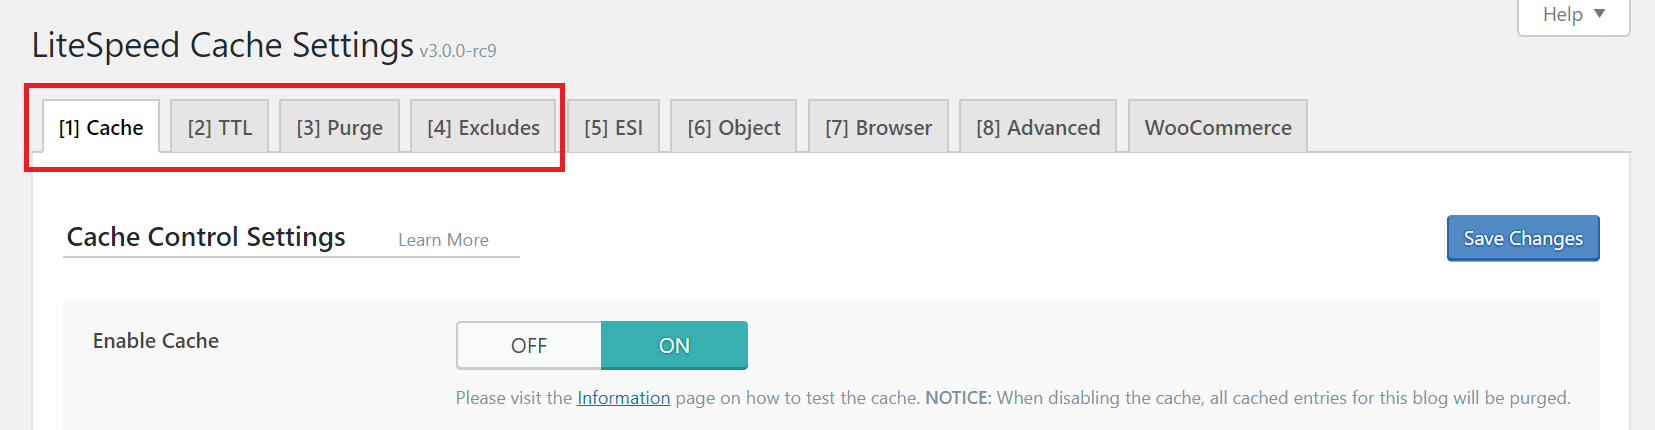 !LSCWP Basic Cache Tabs